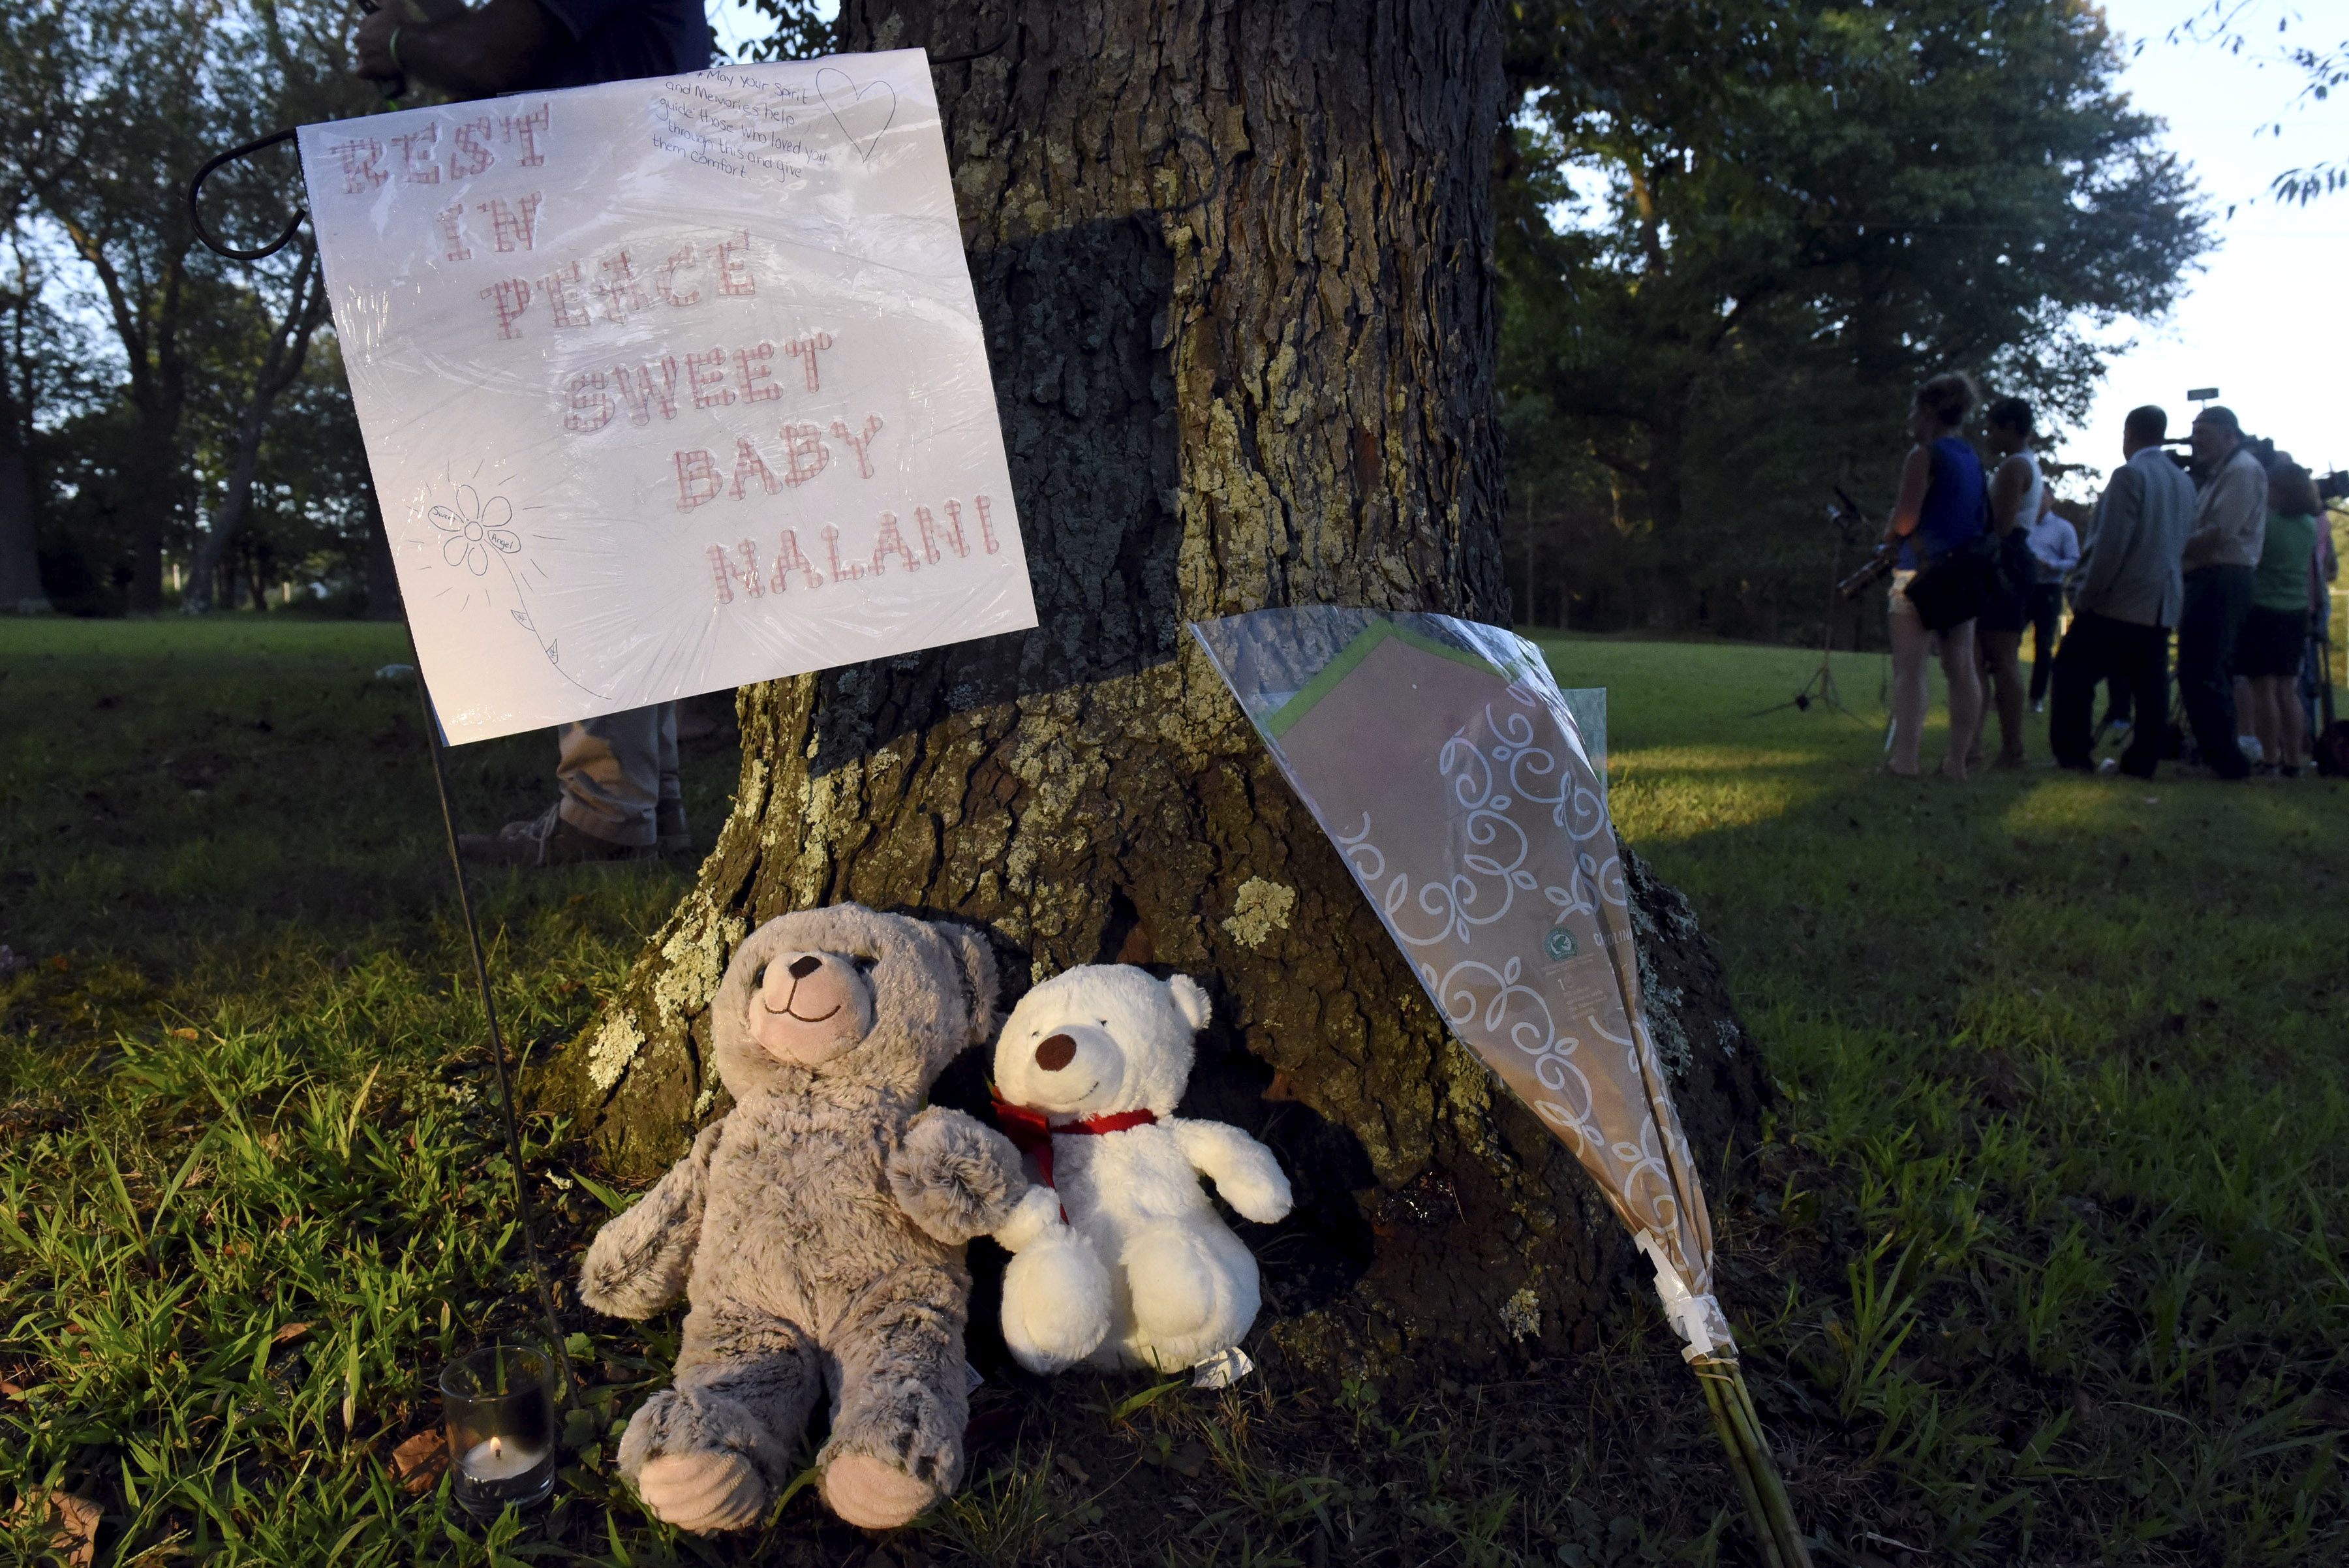 Missing child reported kidnapped found dead